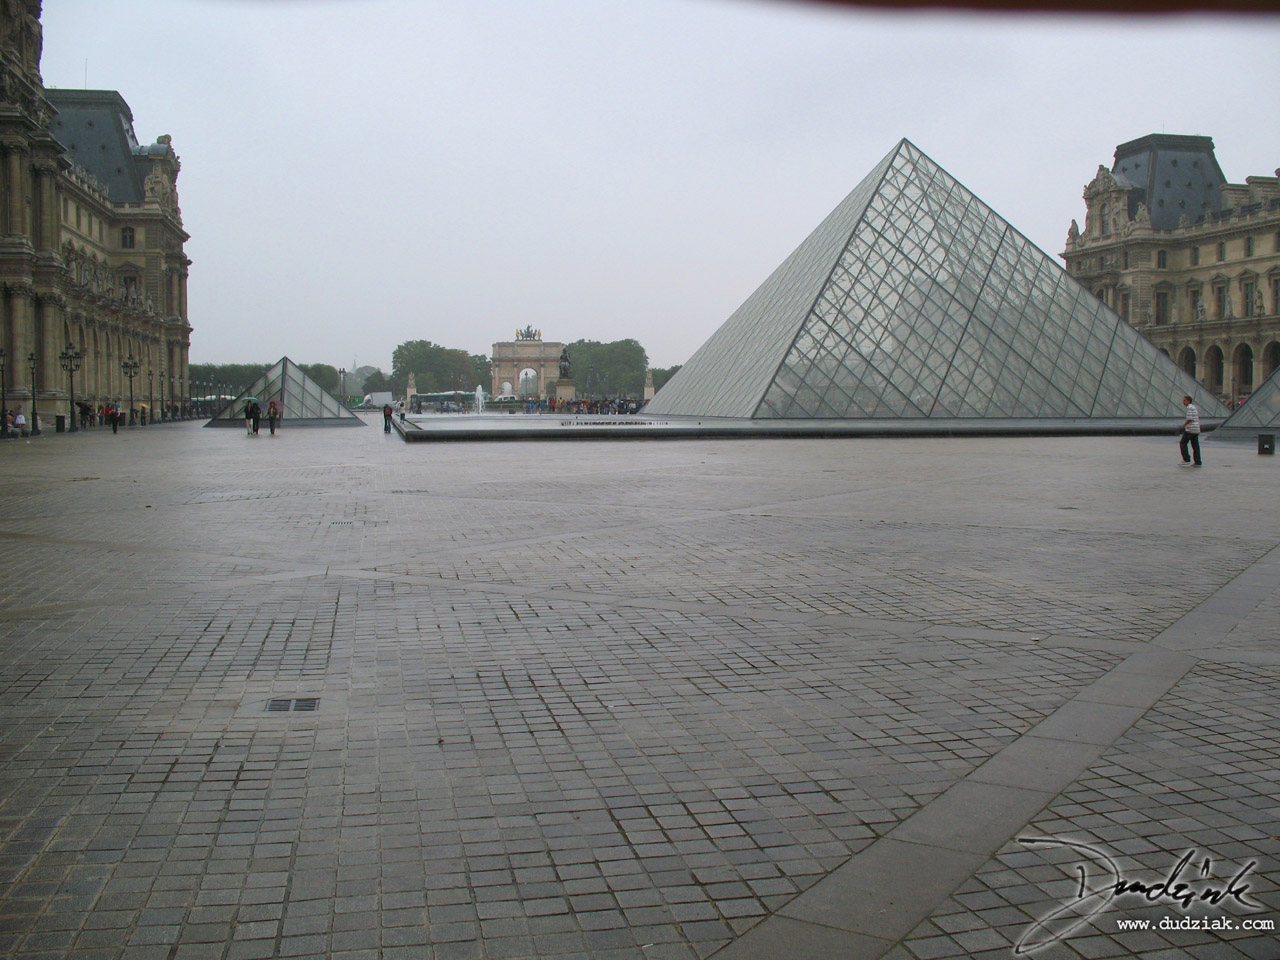 Louvre Pyramid,  France,  Paris,  Musee du Louvre,  Pyramid